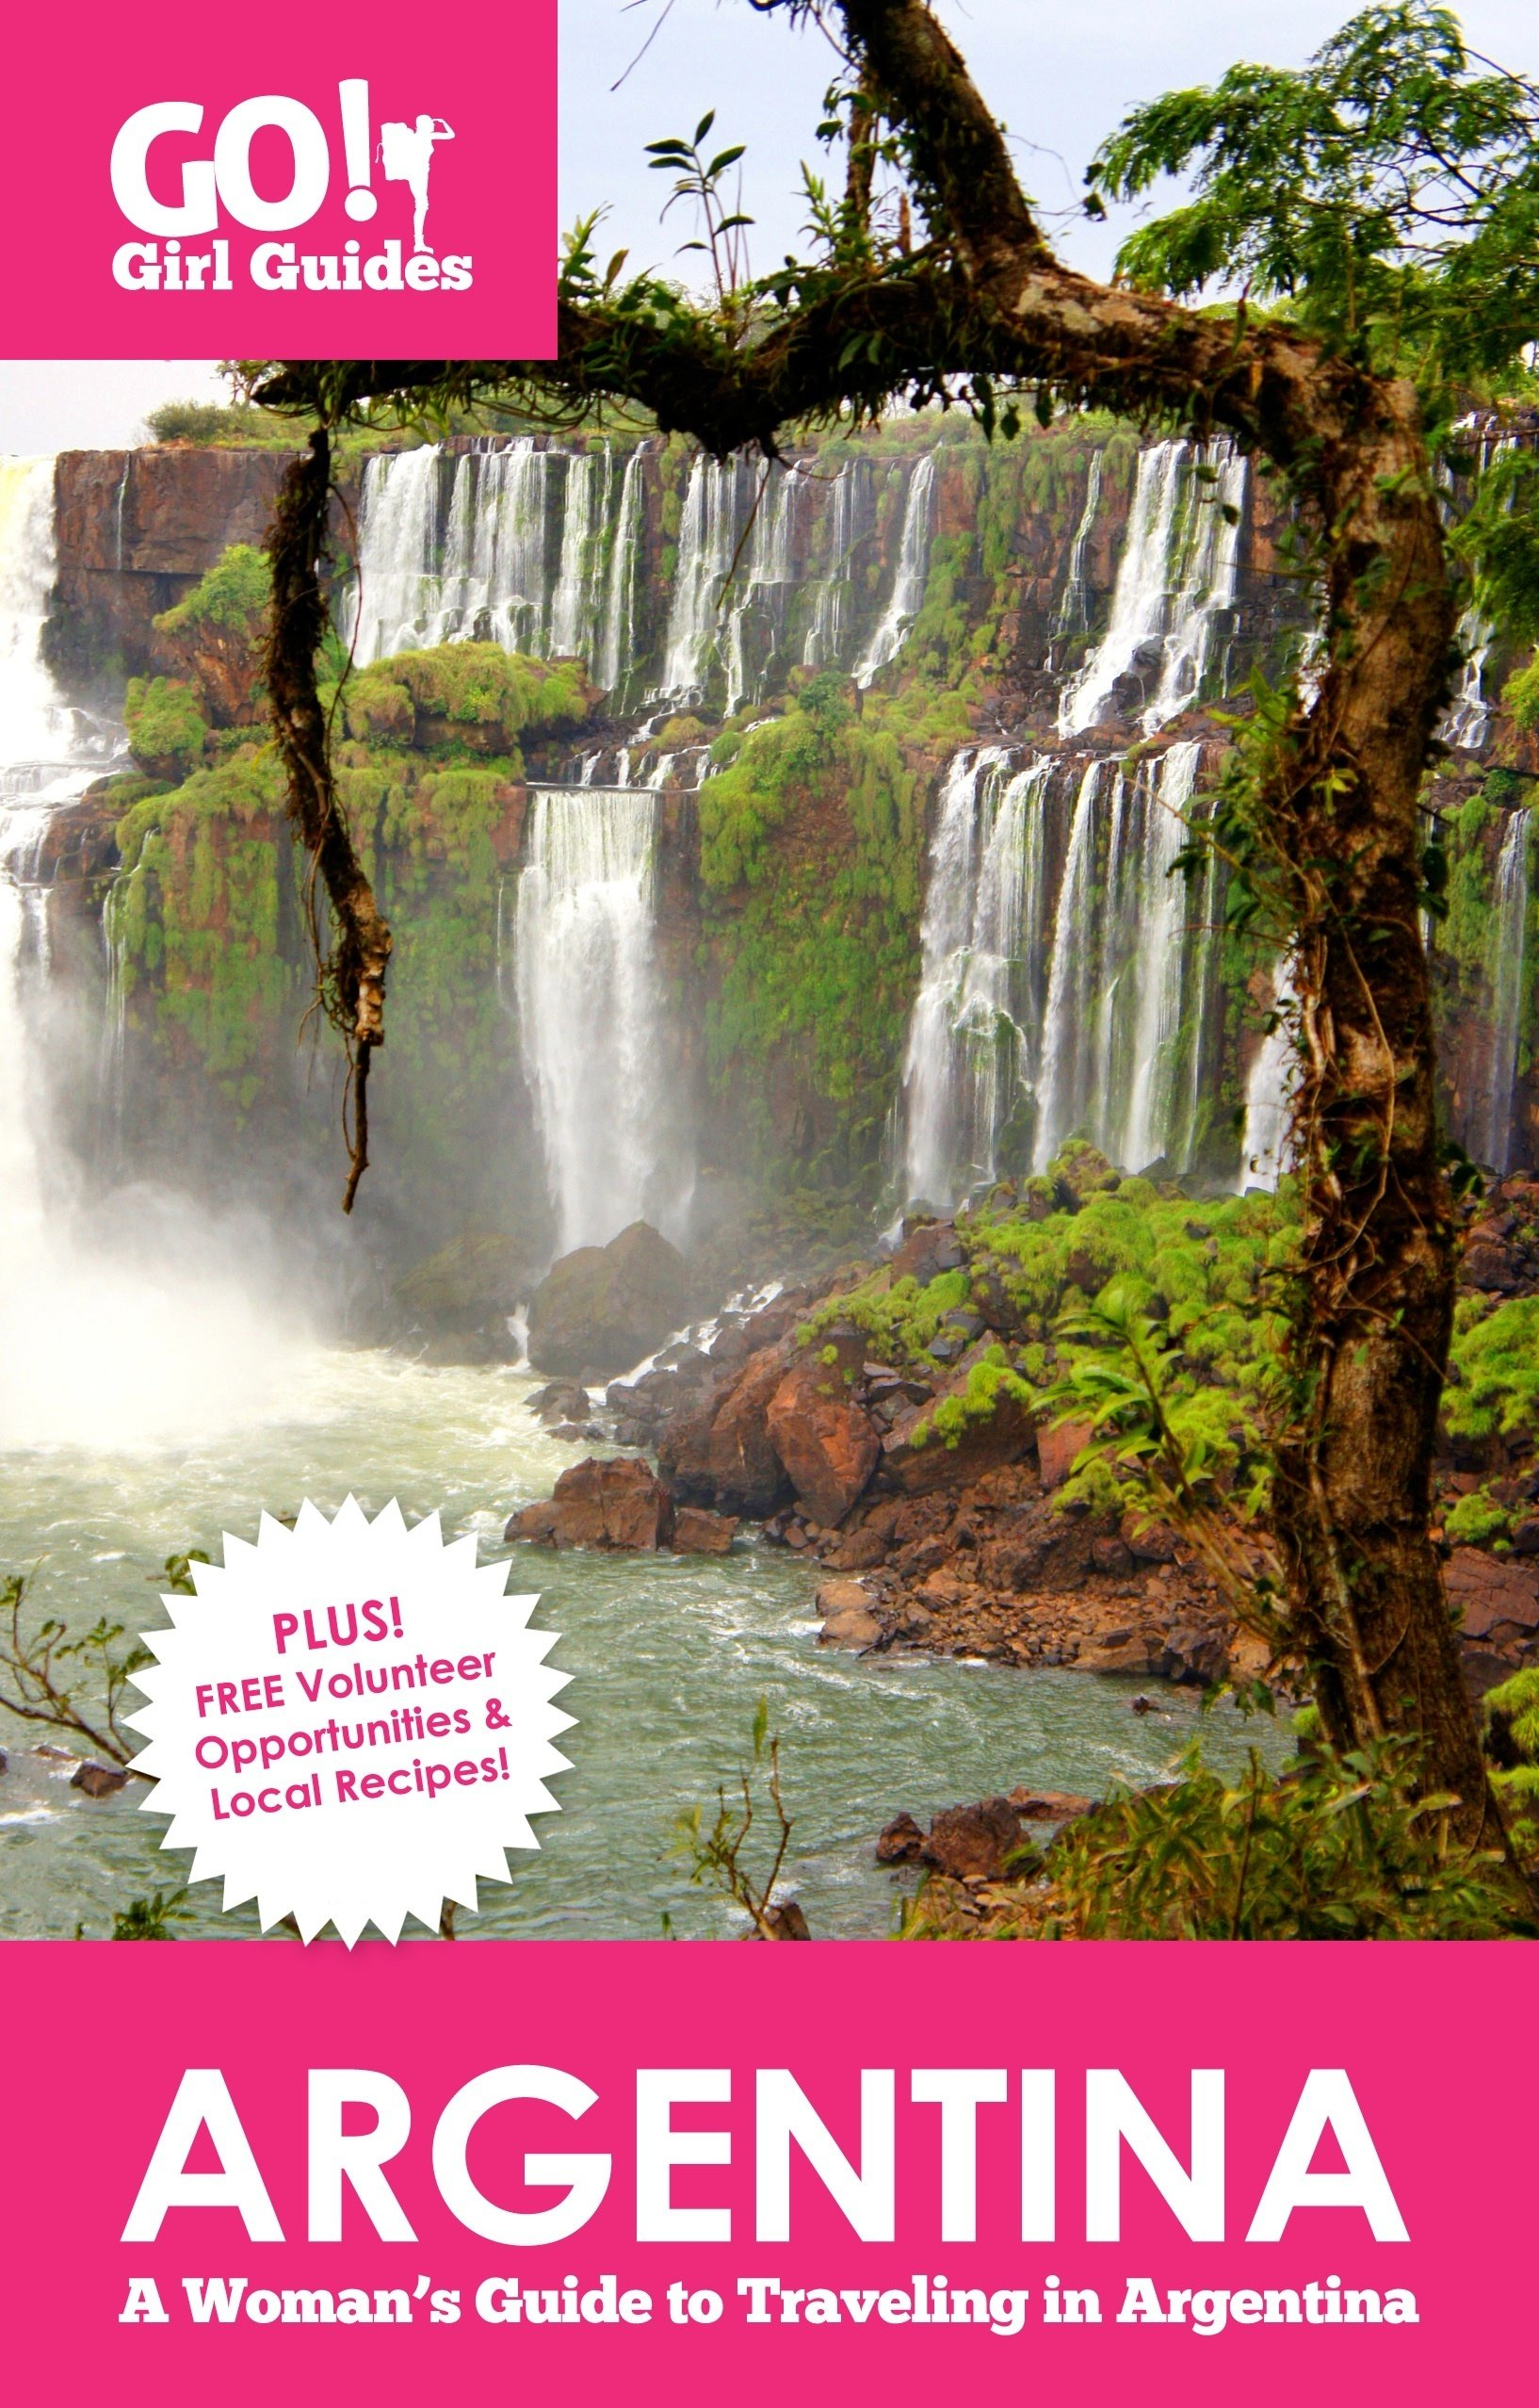 Argentina: A Woman's Guide to Traveling Solo in Argentina 00006